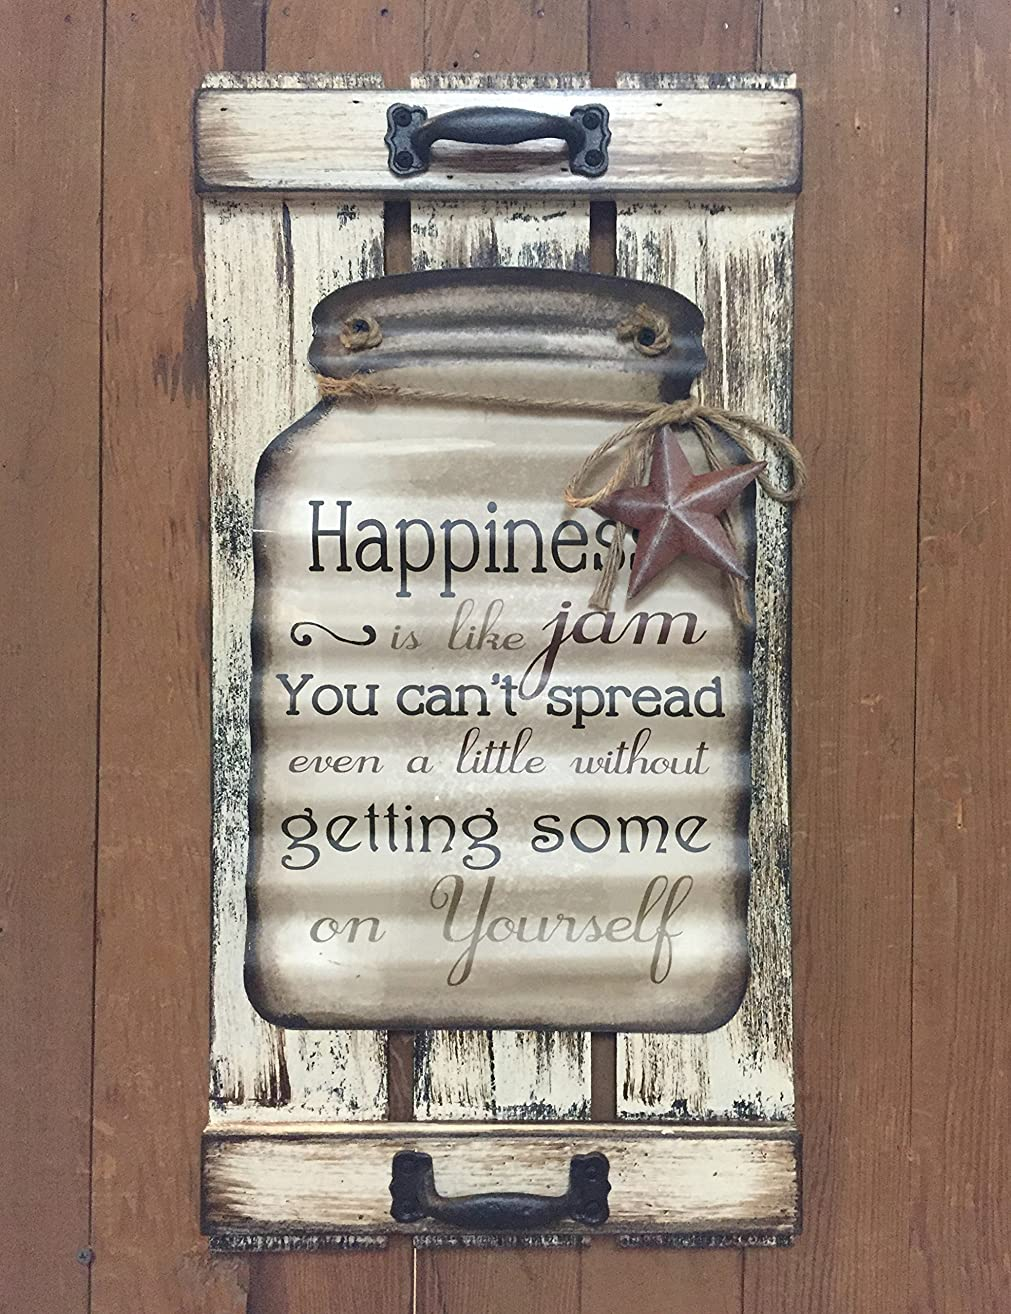 Mason Canning Jar Shutter HAPPINESS is like jam, you can't spread even a little without getting some on yourself. SIGN Distressed Wood Rustic Country Kitchen Tin Wall Decor